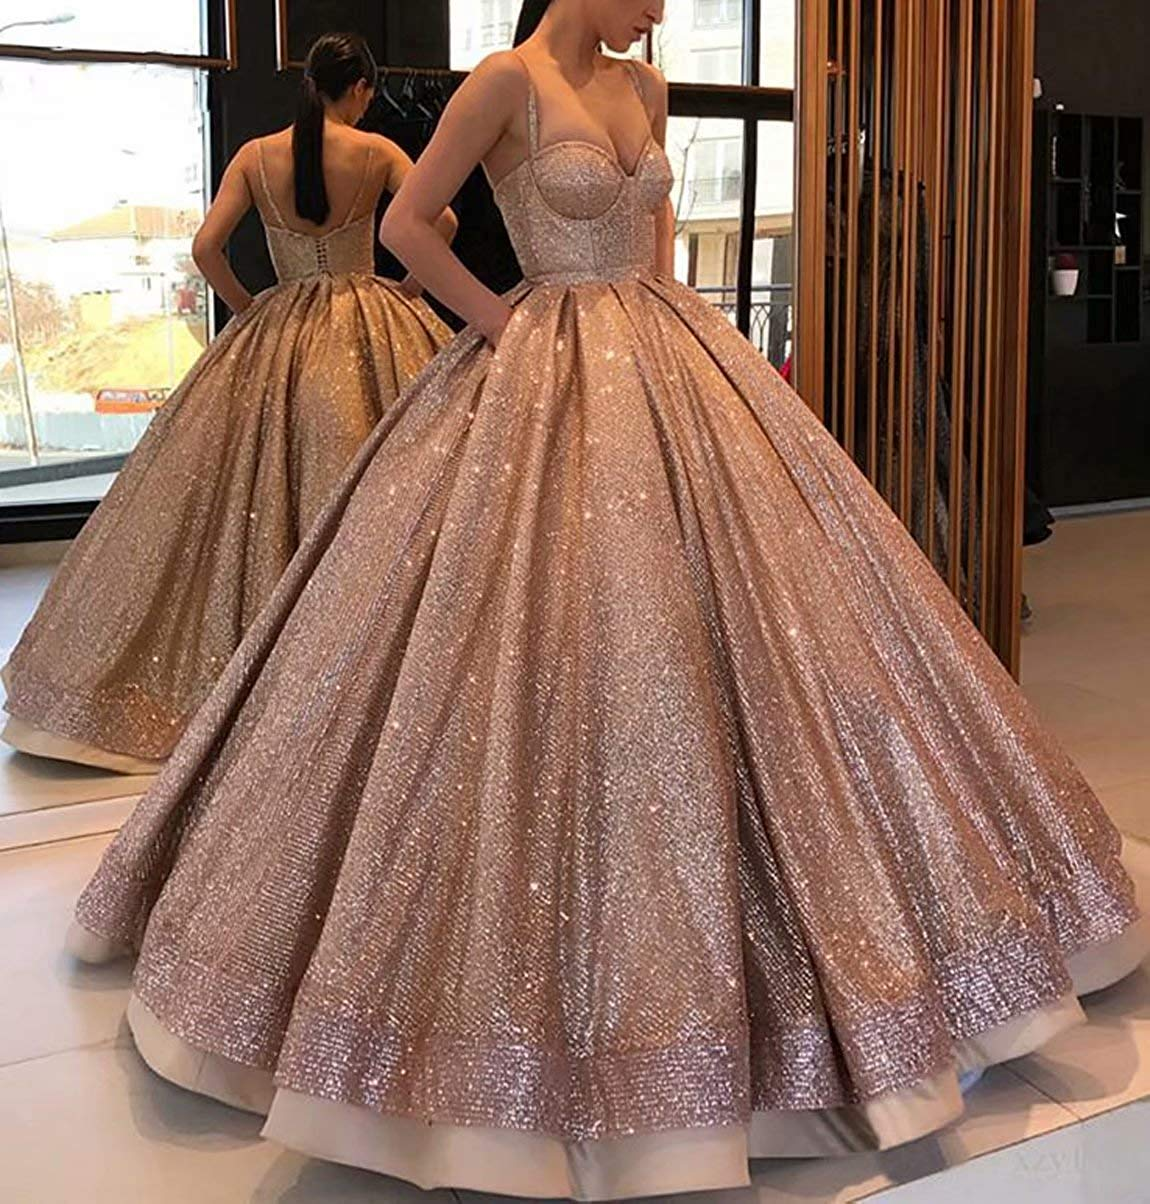 Mauwey Women S Sparkly Long Prom Quinceanera Dresses Spaghetti Strap Evening Party Ball Gowns Wedding Dress Black,Beach Dresses For Weddings Mother Of The Bride